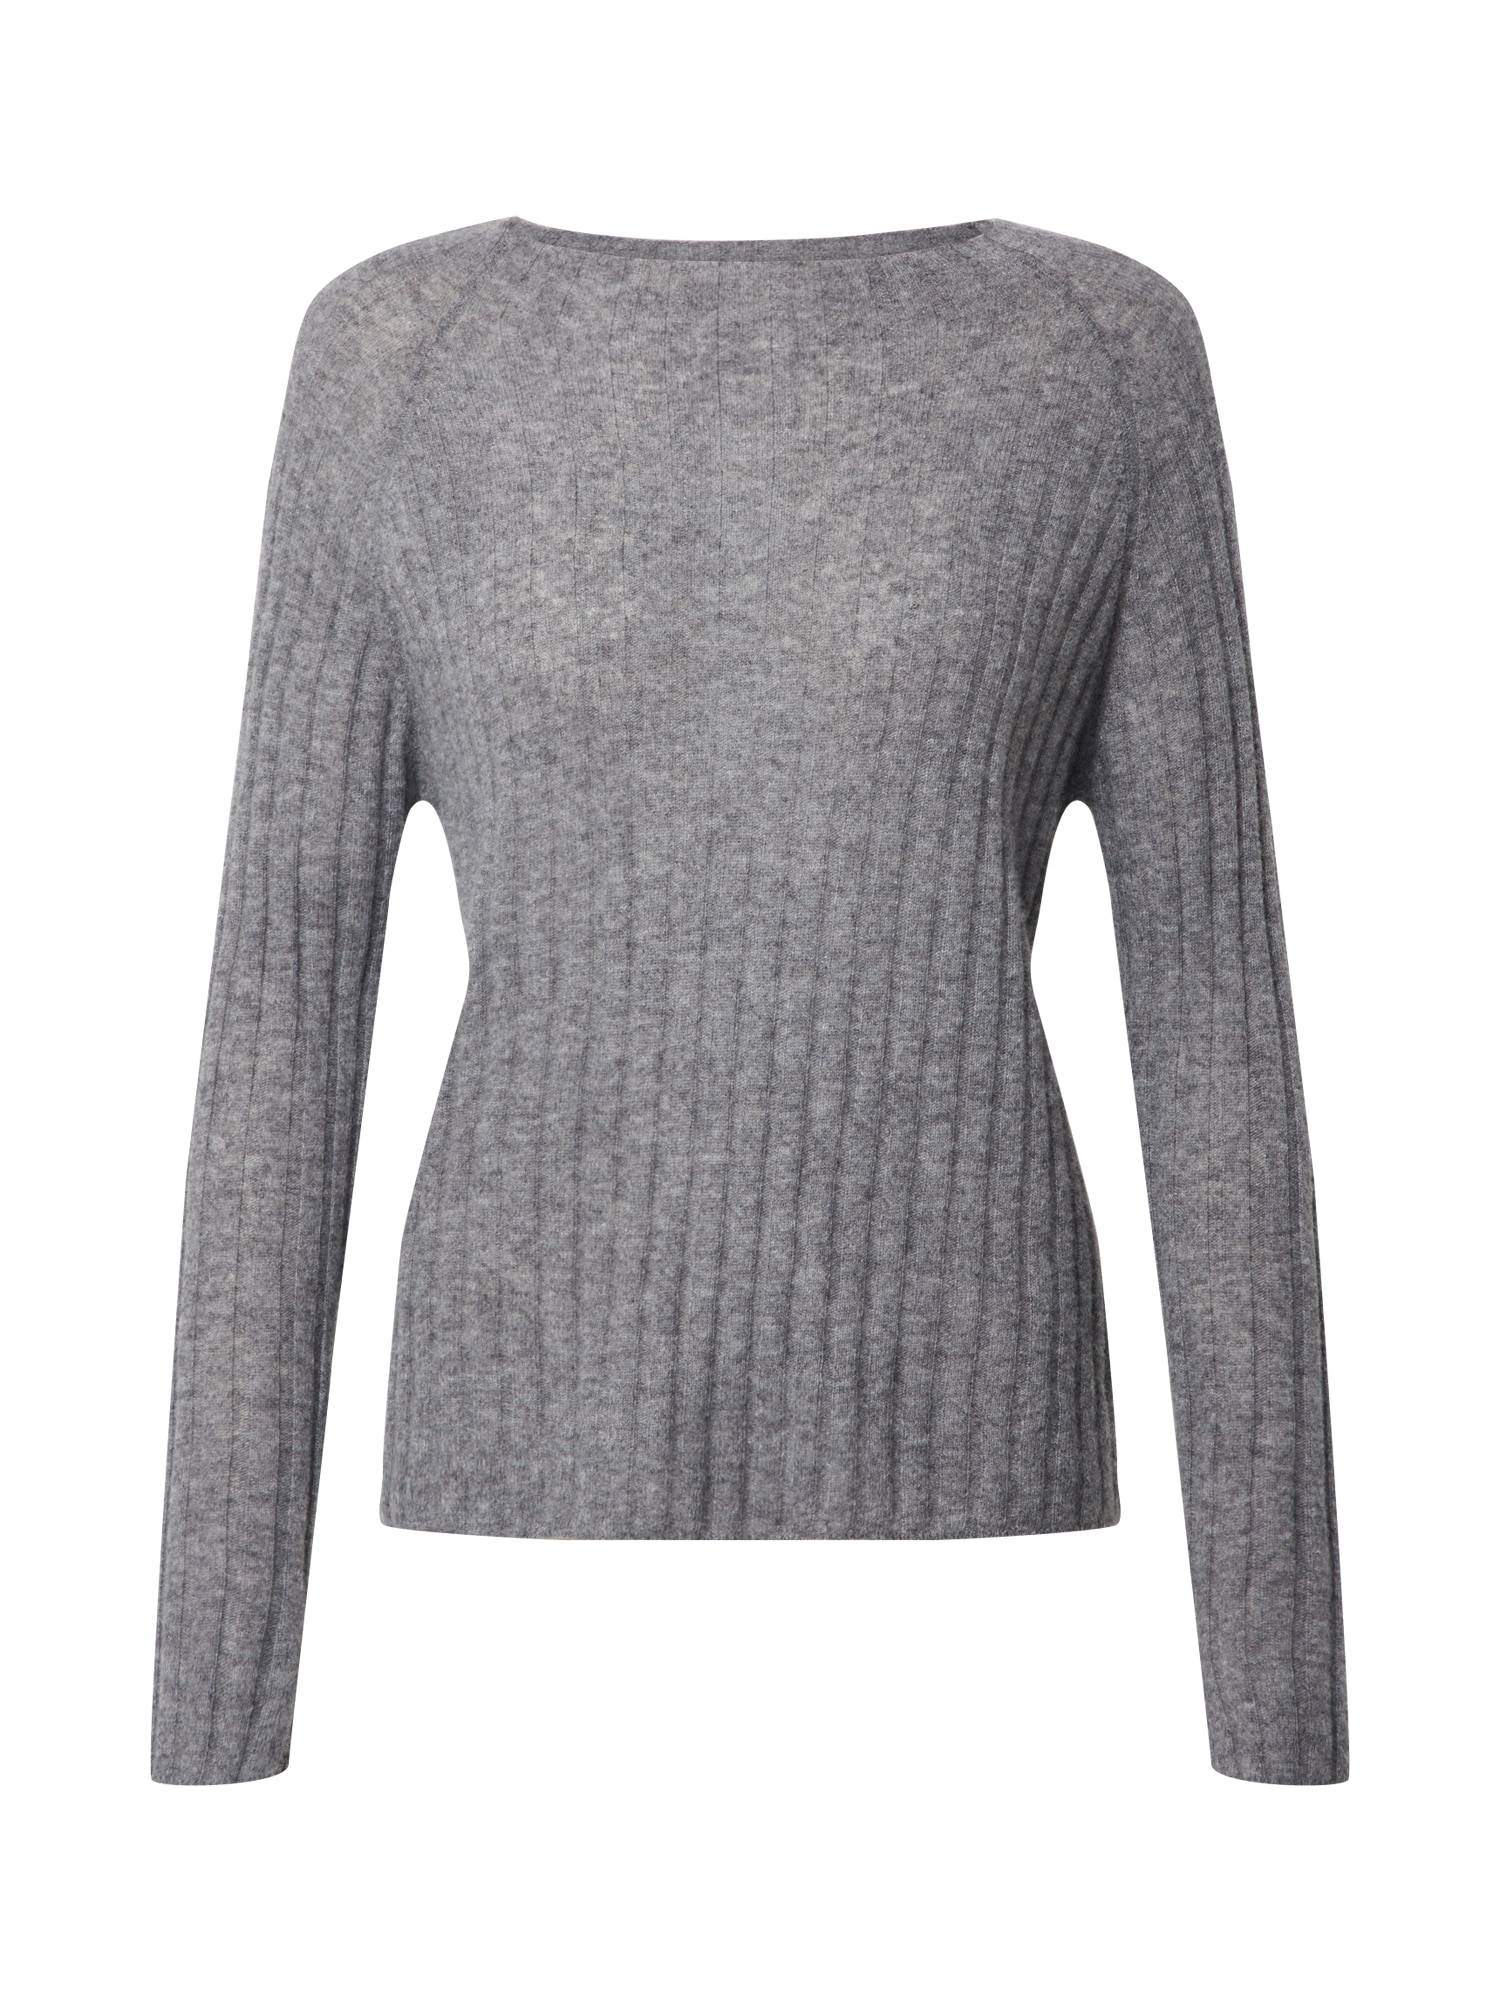 Princess Pull-over  - Gris - Taille: 38 - female